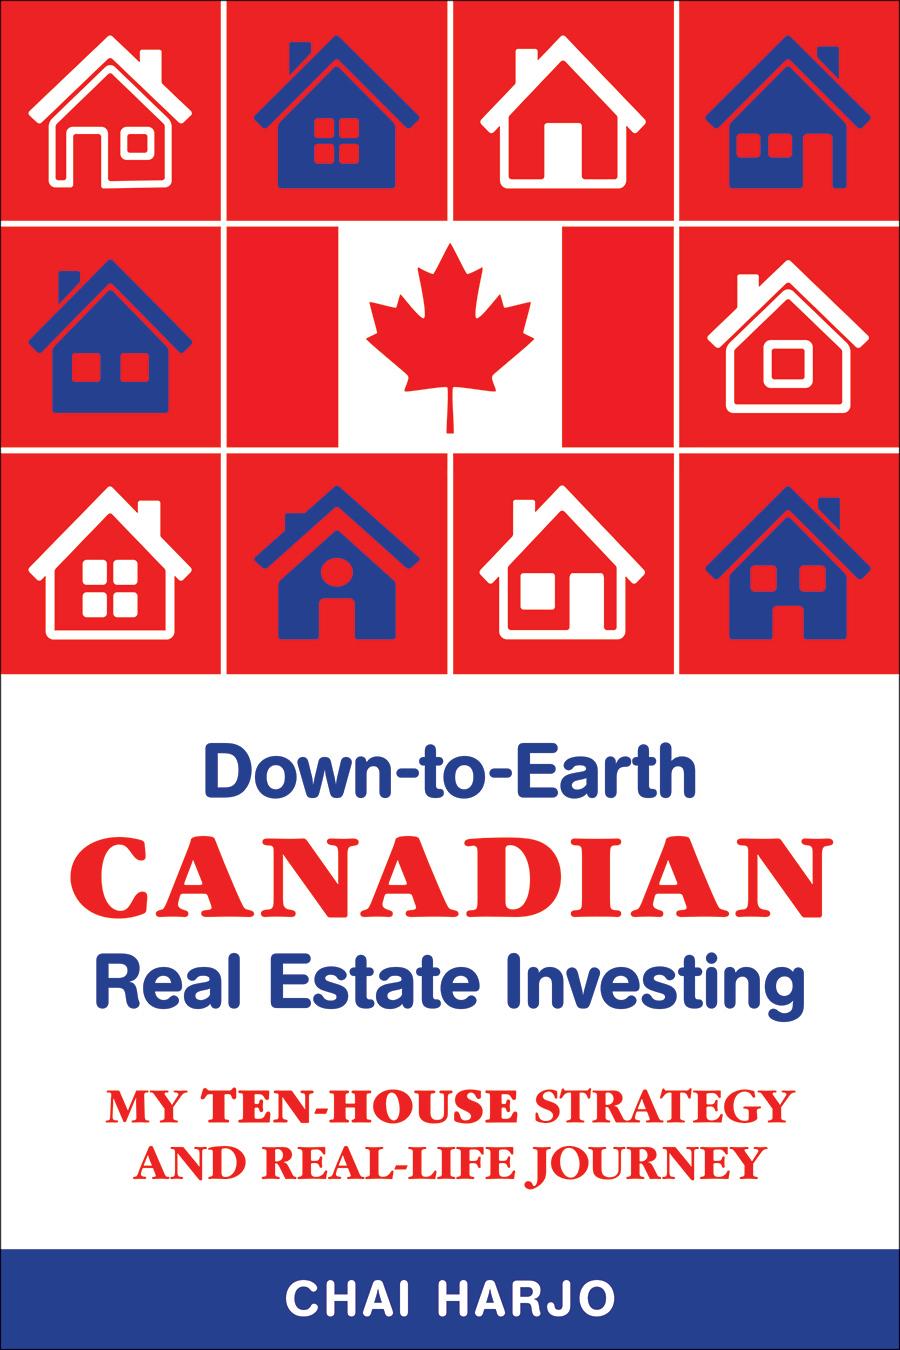 Down-to-Earth-Canadian-Real-Estate-Investing